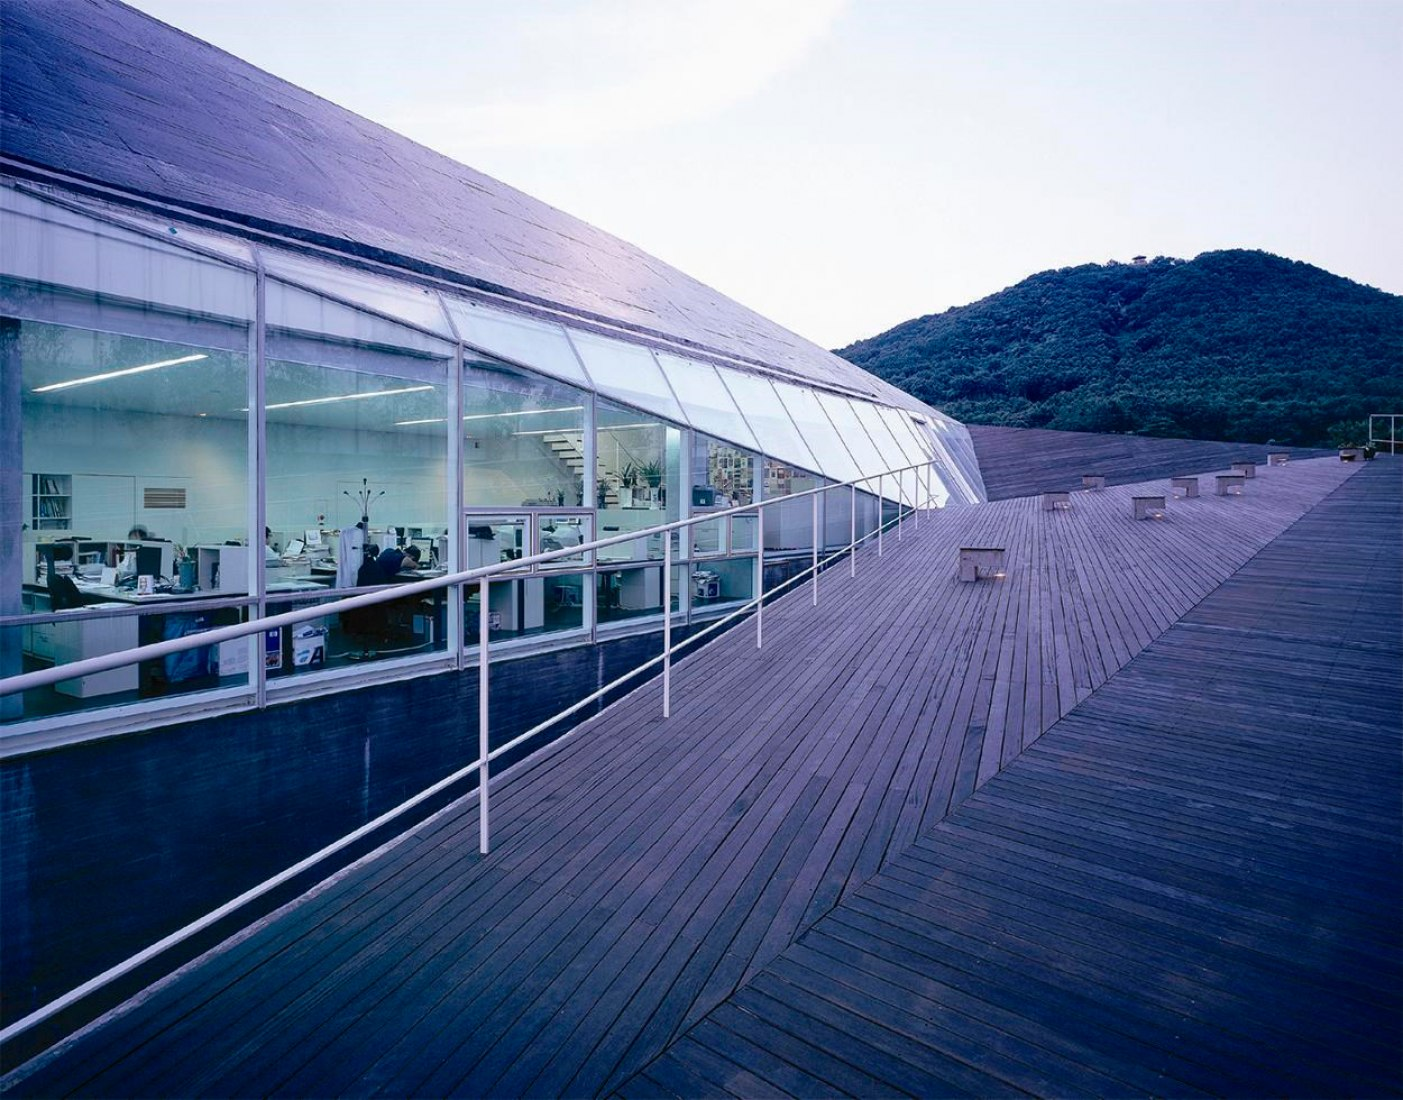 Roof and up floor. Kyomunsa Offices by Daniel Valle Architects. Image courtesy of Daniel Valle Architects.